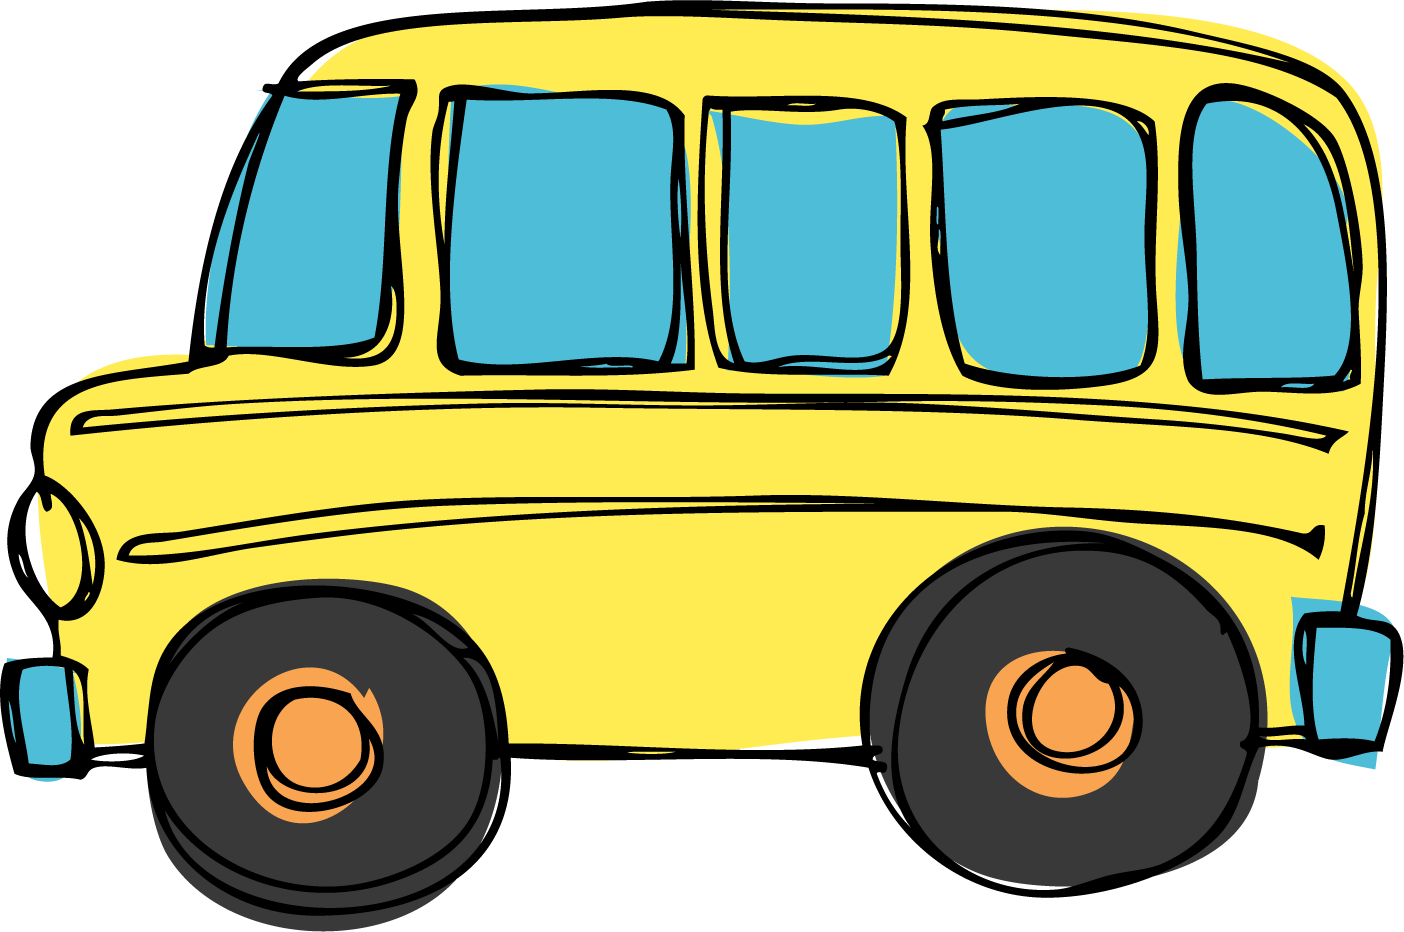 Working on car clipart jpg freeuse library Kindergarten school bus clipart - ClipartFest jpg freeuse library